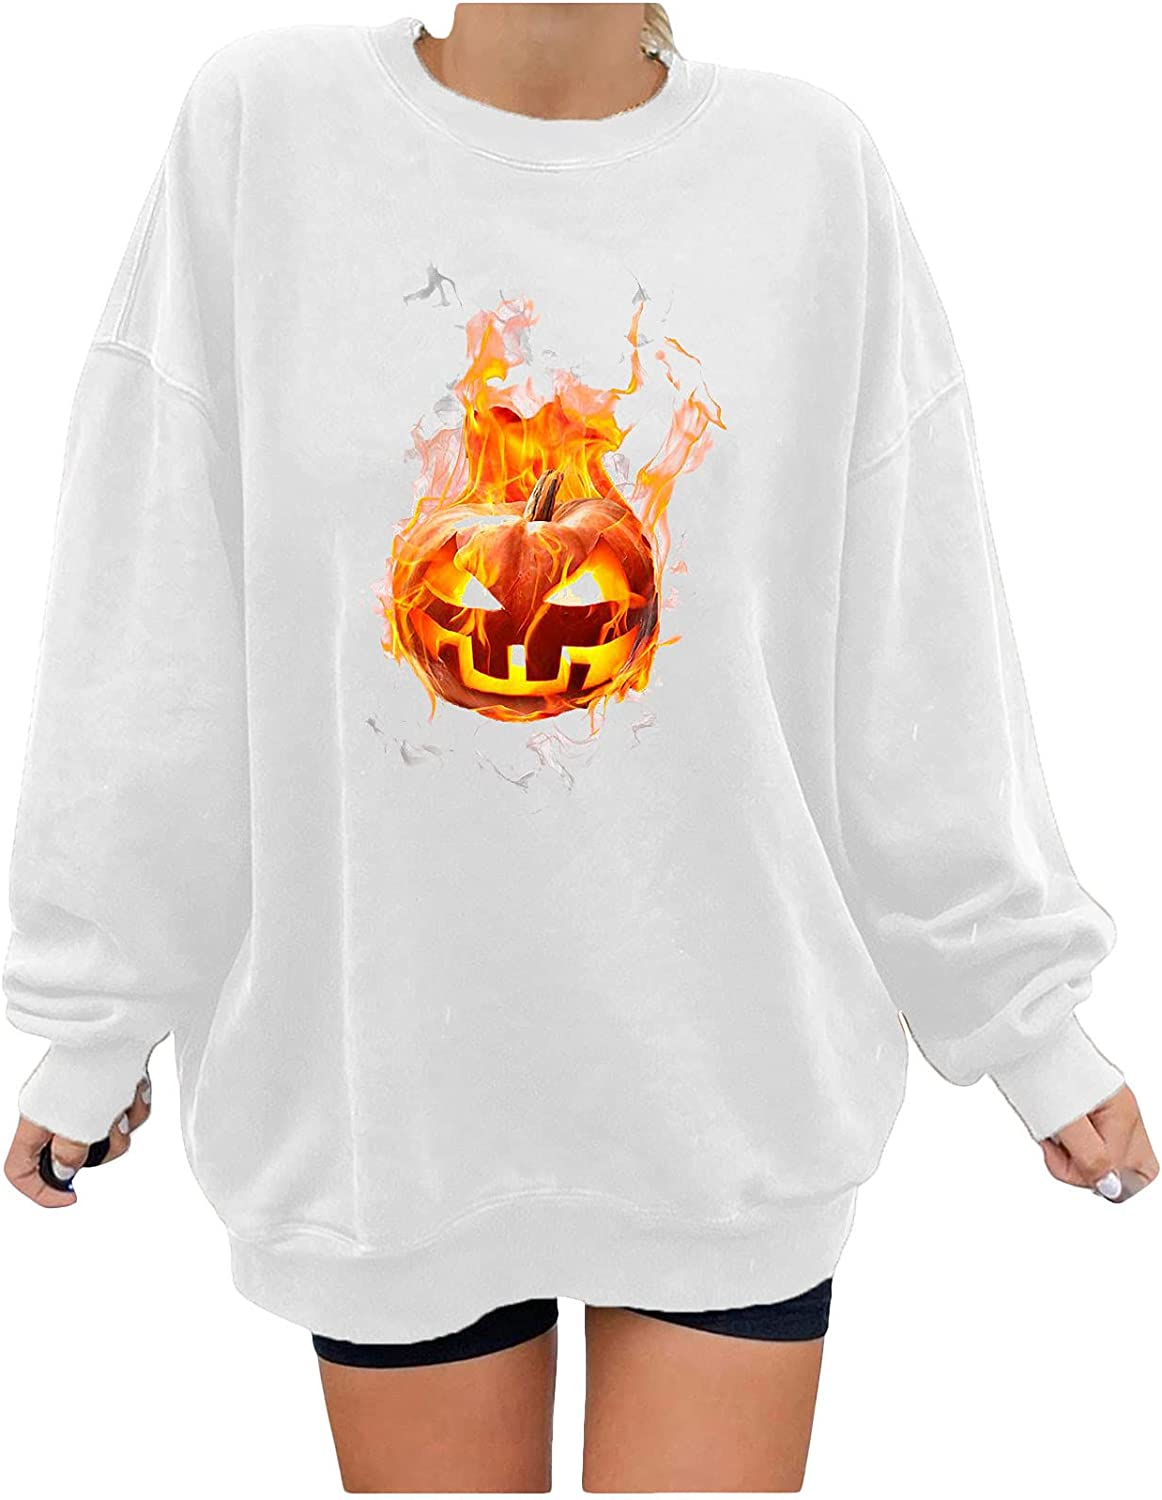 Halloween Sweaters for Women Round Neck Long Sleeve Printed Casual Fashion Loose Sweater Top Autumn Winter